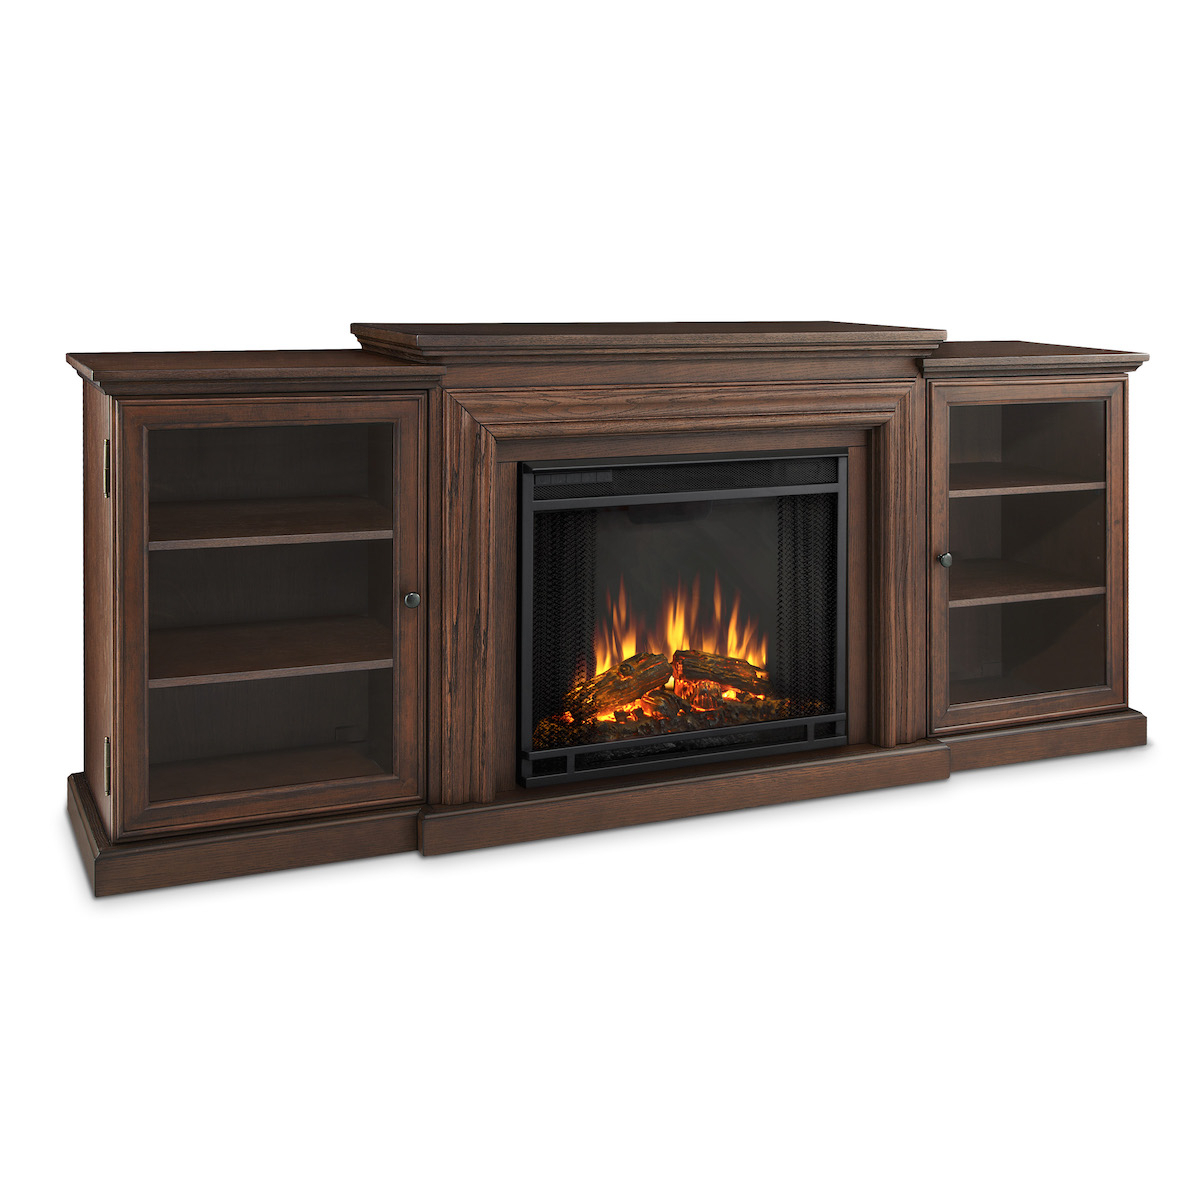 Real Flame Frederick Entertainment Center Electric Throughout Electric Fireplace Tv Stands With Shelf (View 18 of 20)